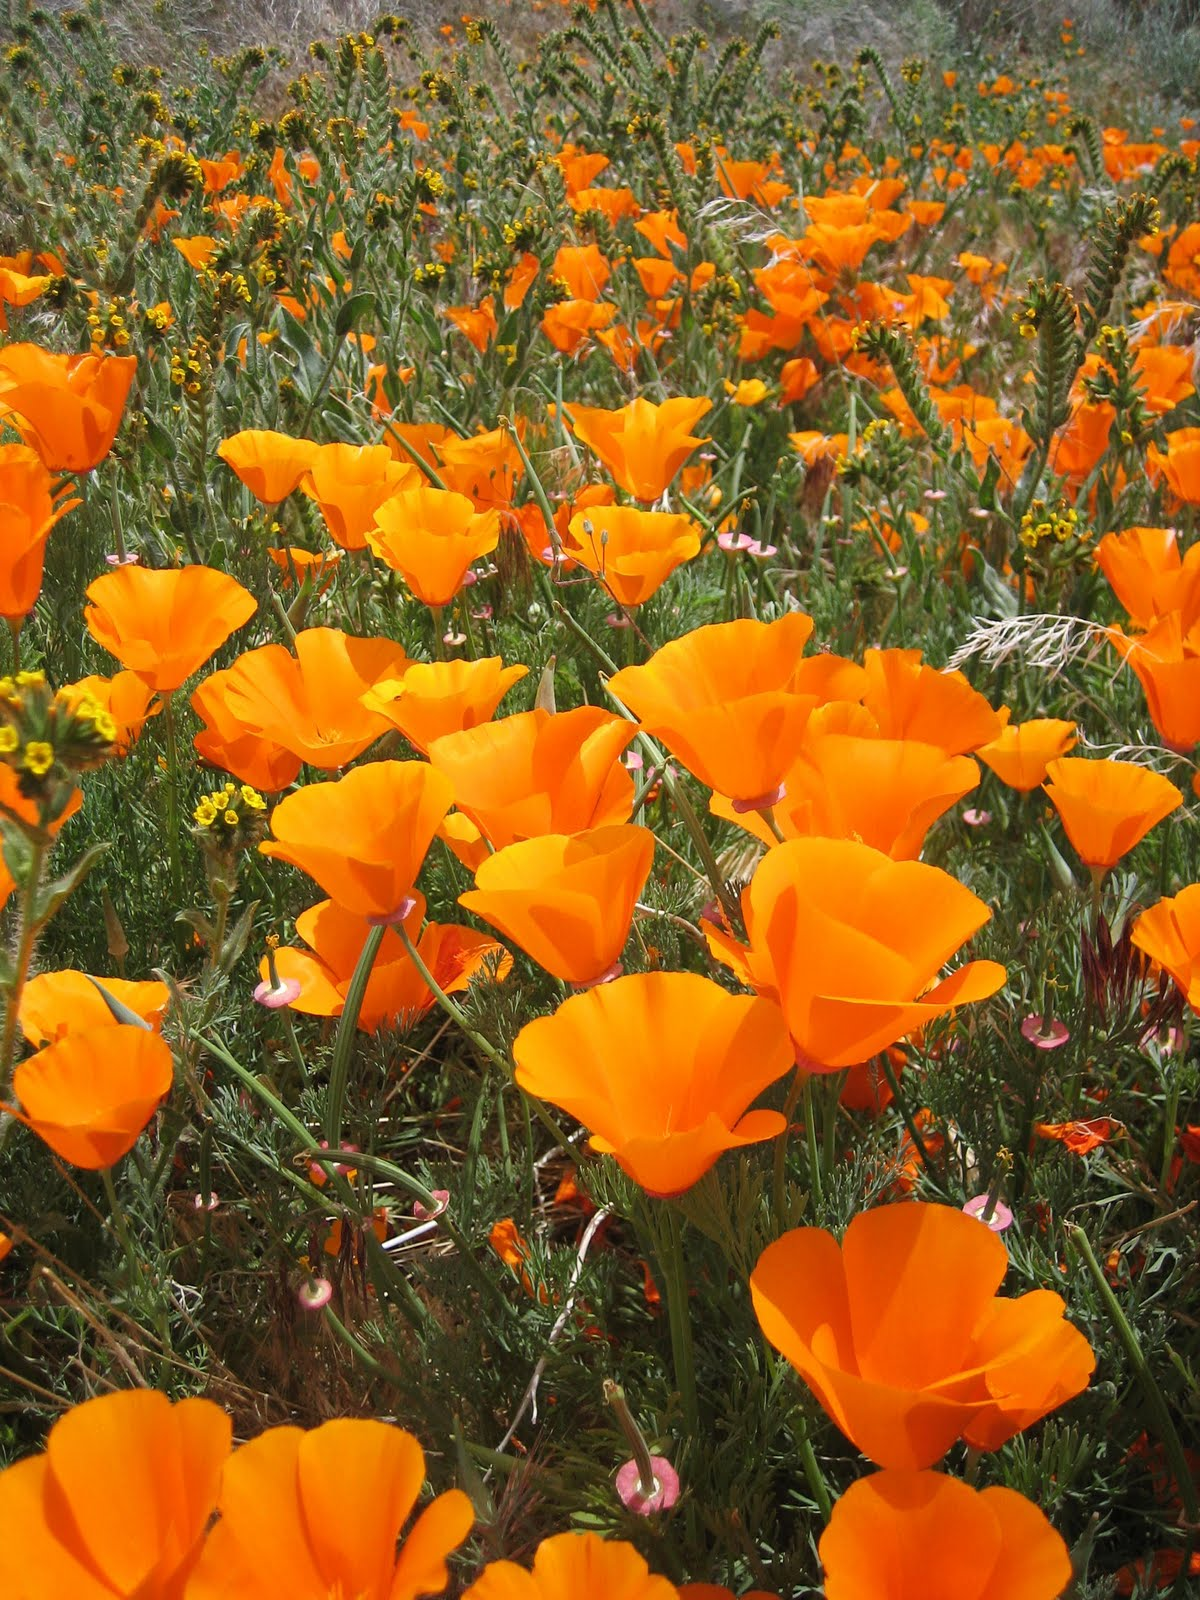 Plant article orchids characteristics bright orange california poppies bloom at the antelope valley poppy reserve located in northern los angeles county from late february through early may mightylinksfo